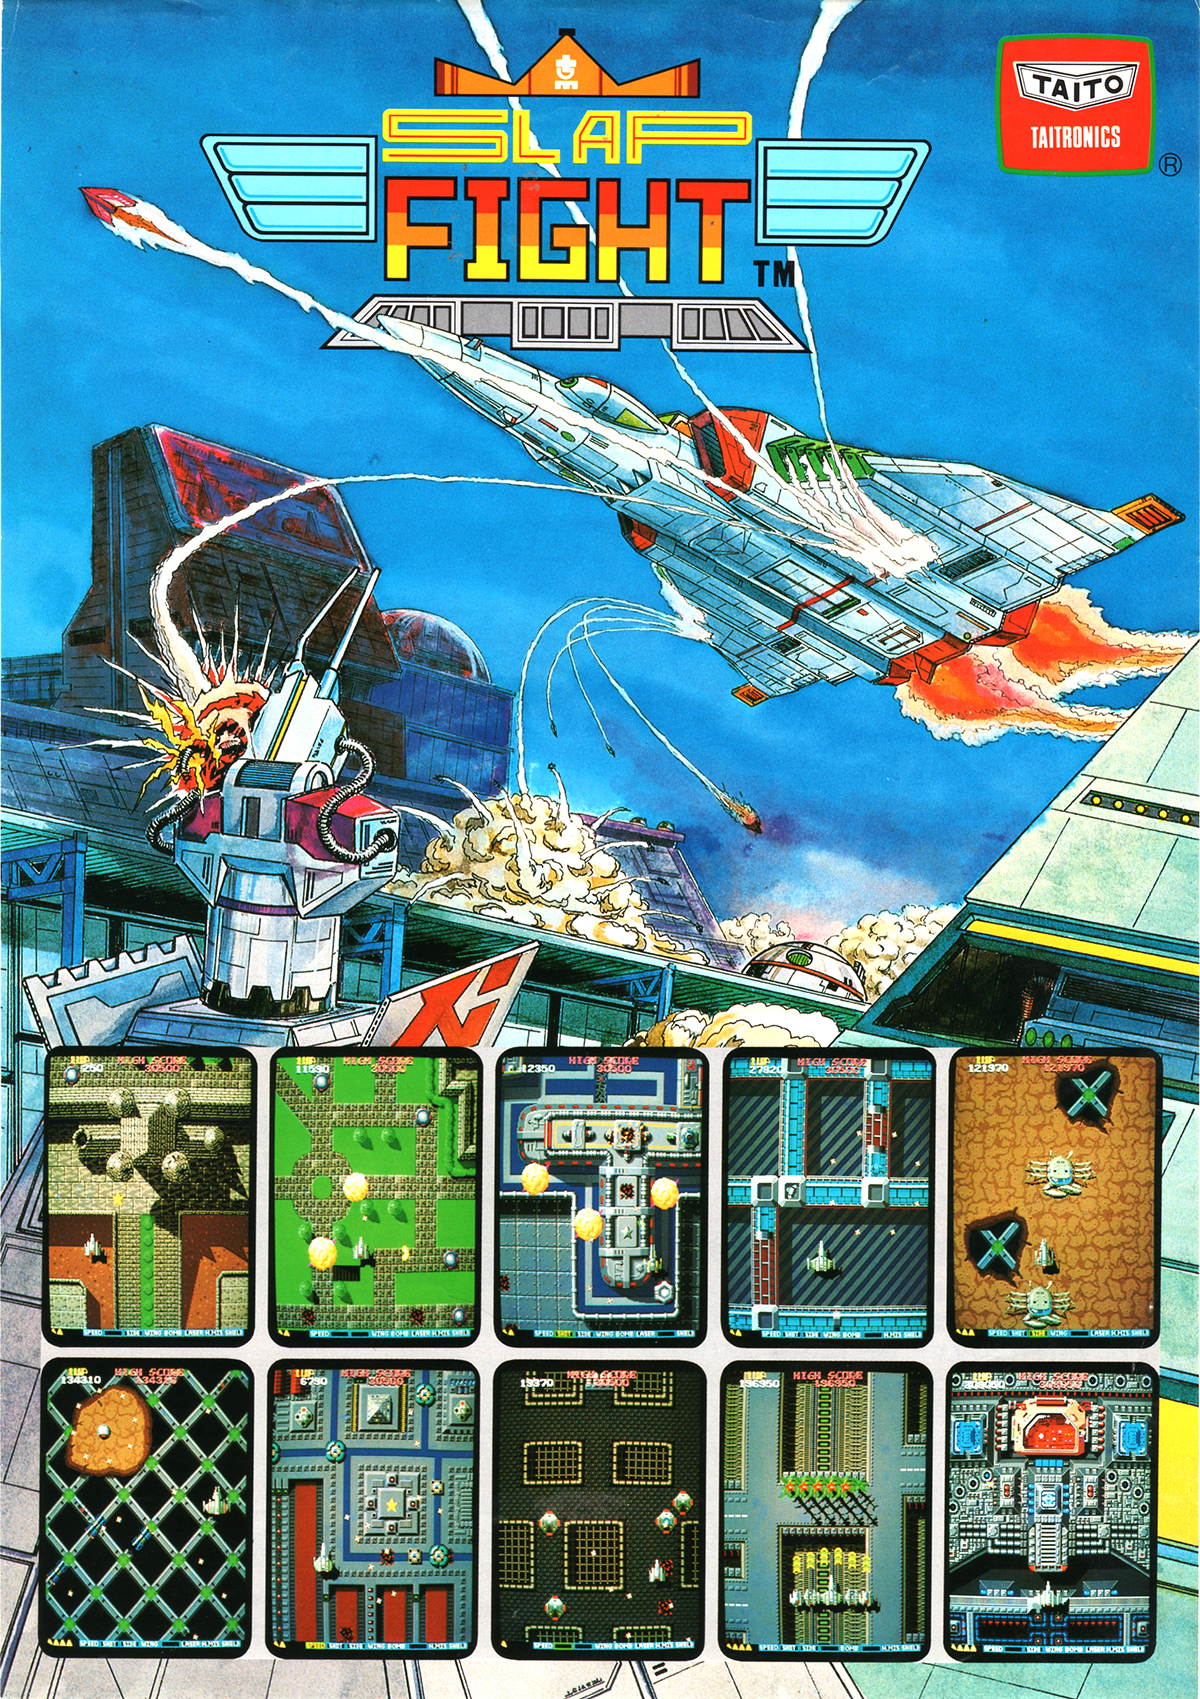 tiger heli game with E6 9d B1 E4 Ba 9c E3 83 97 E3 83 A9 E3 83 B3 on Tiger Heli further Mini Gravity Graph Cool 1970s Pendulum as well Nintendo Nes together with Penguin Fly 2 Hacked together with Watch.